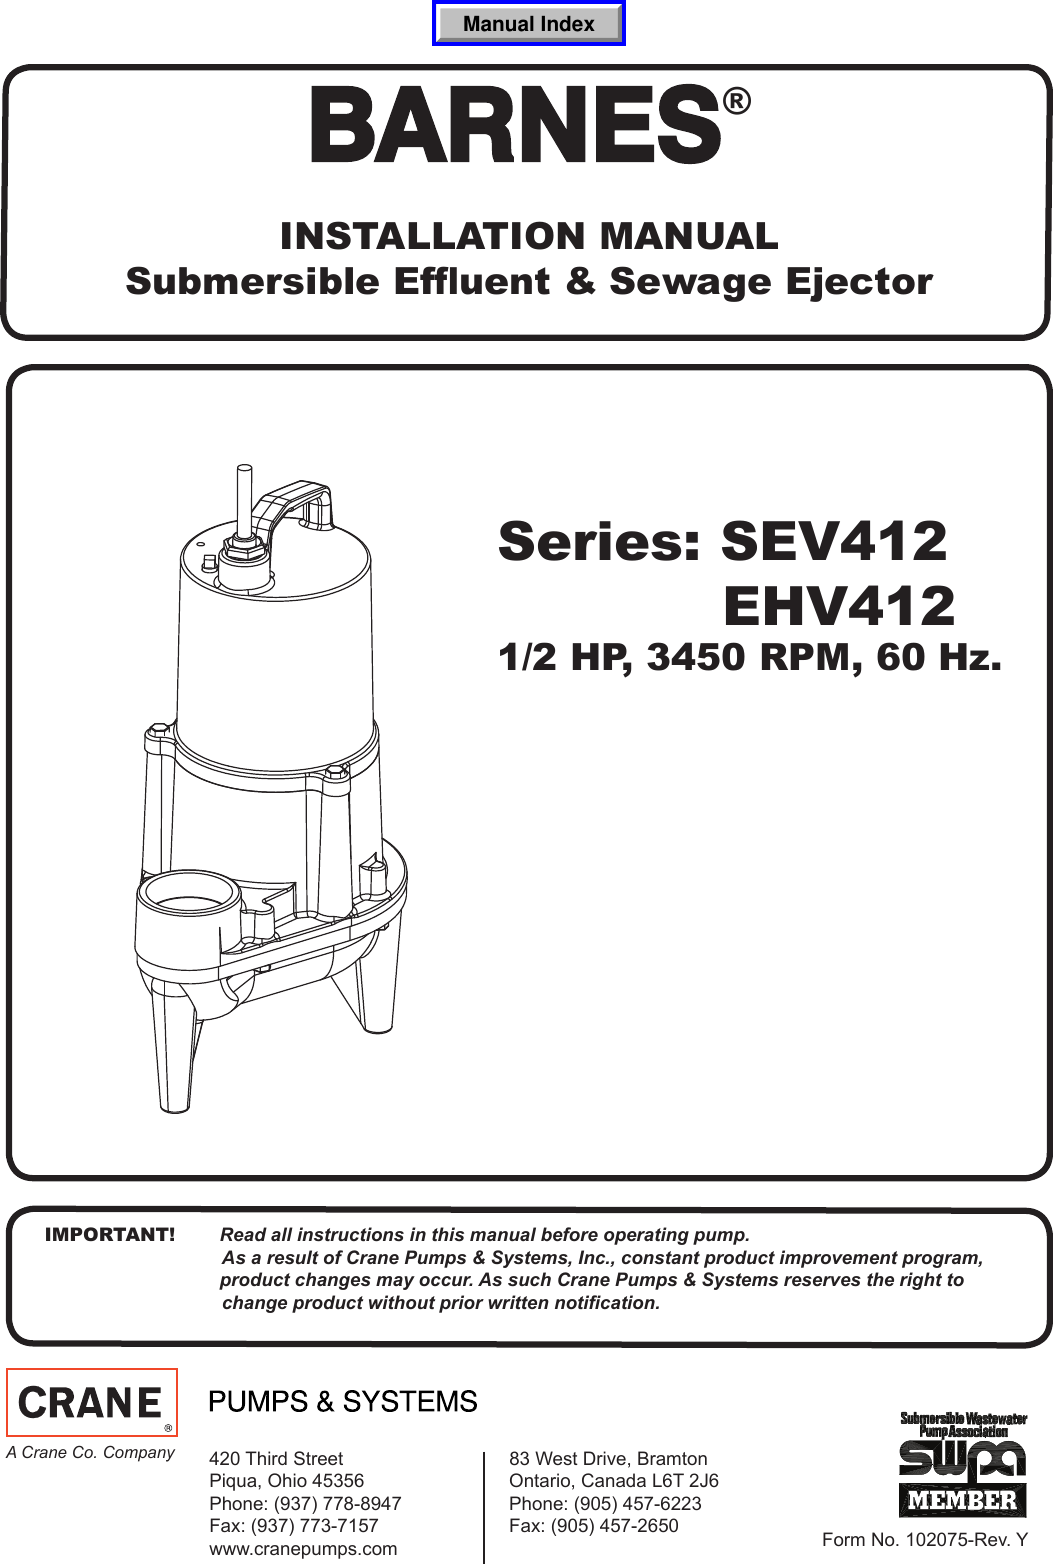 539778 2 Barnes Sev412 Installation Manual Hydraulic Pump Wiring Diagram For